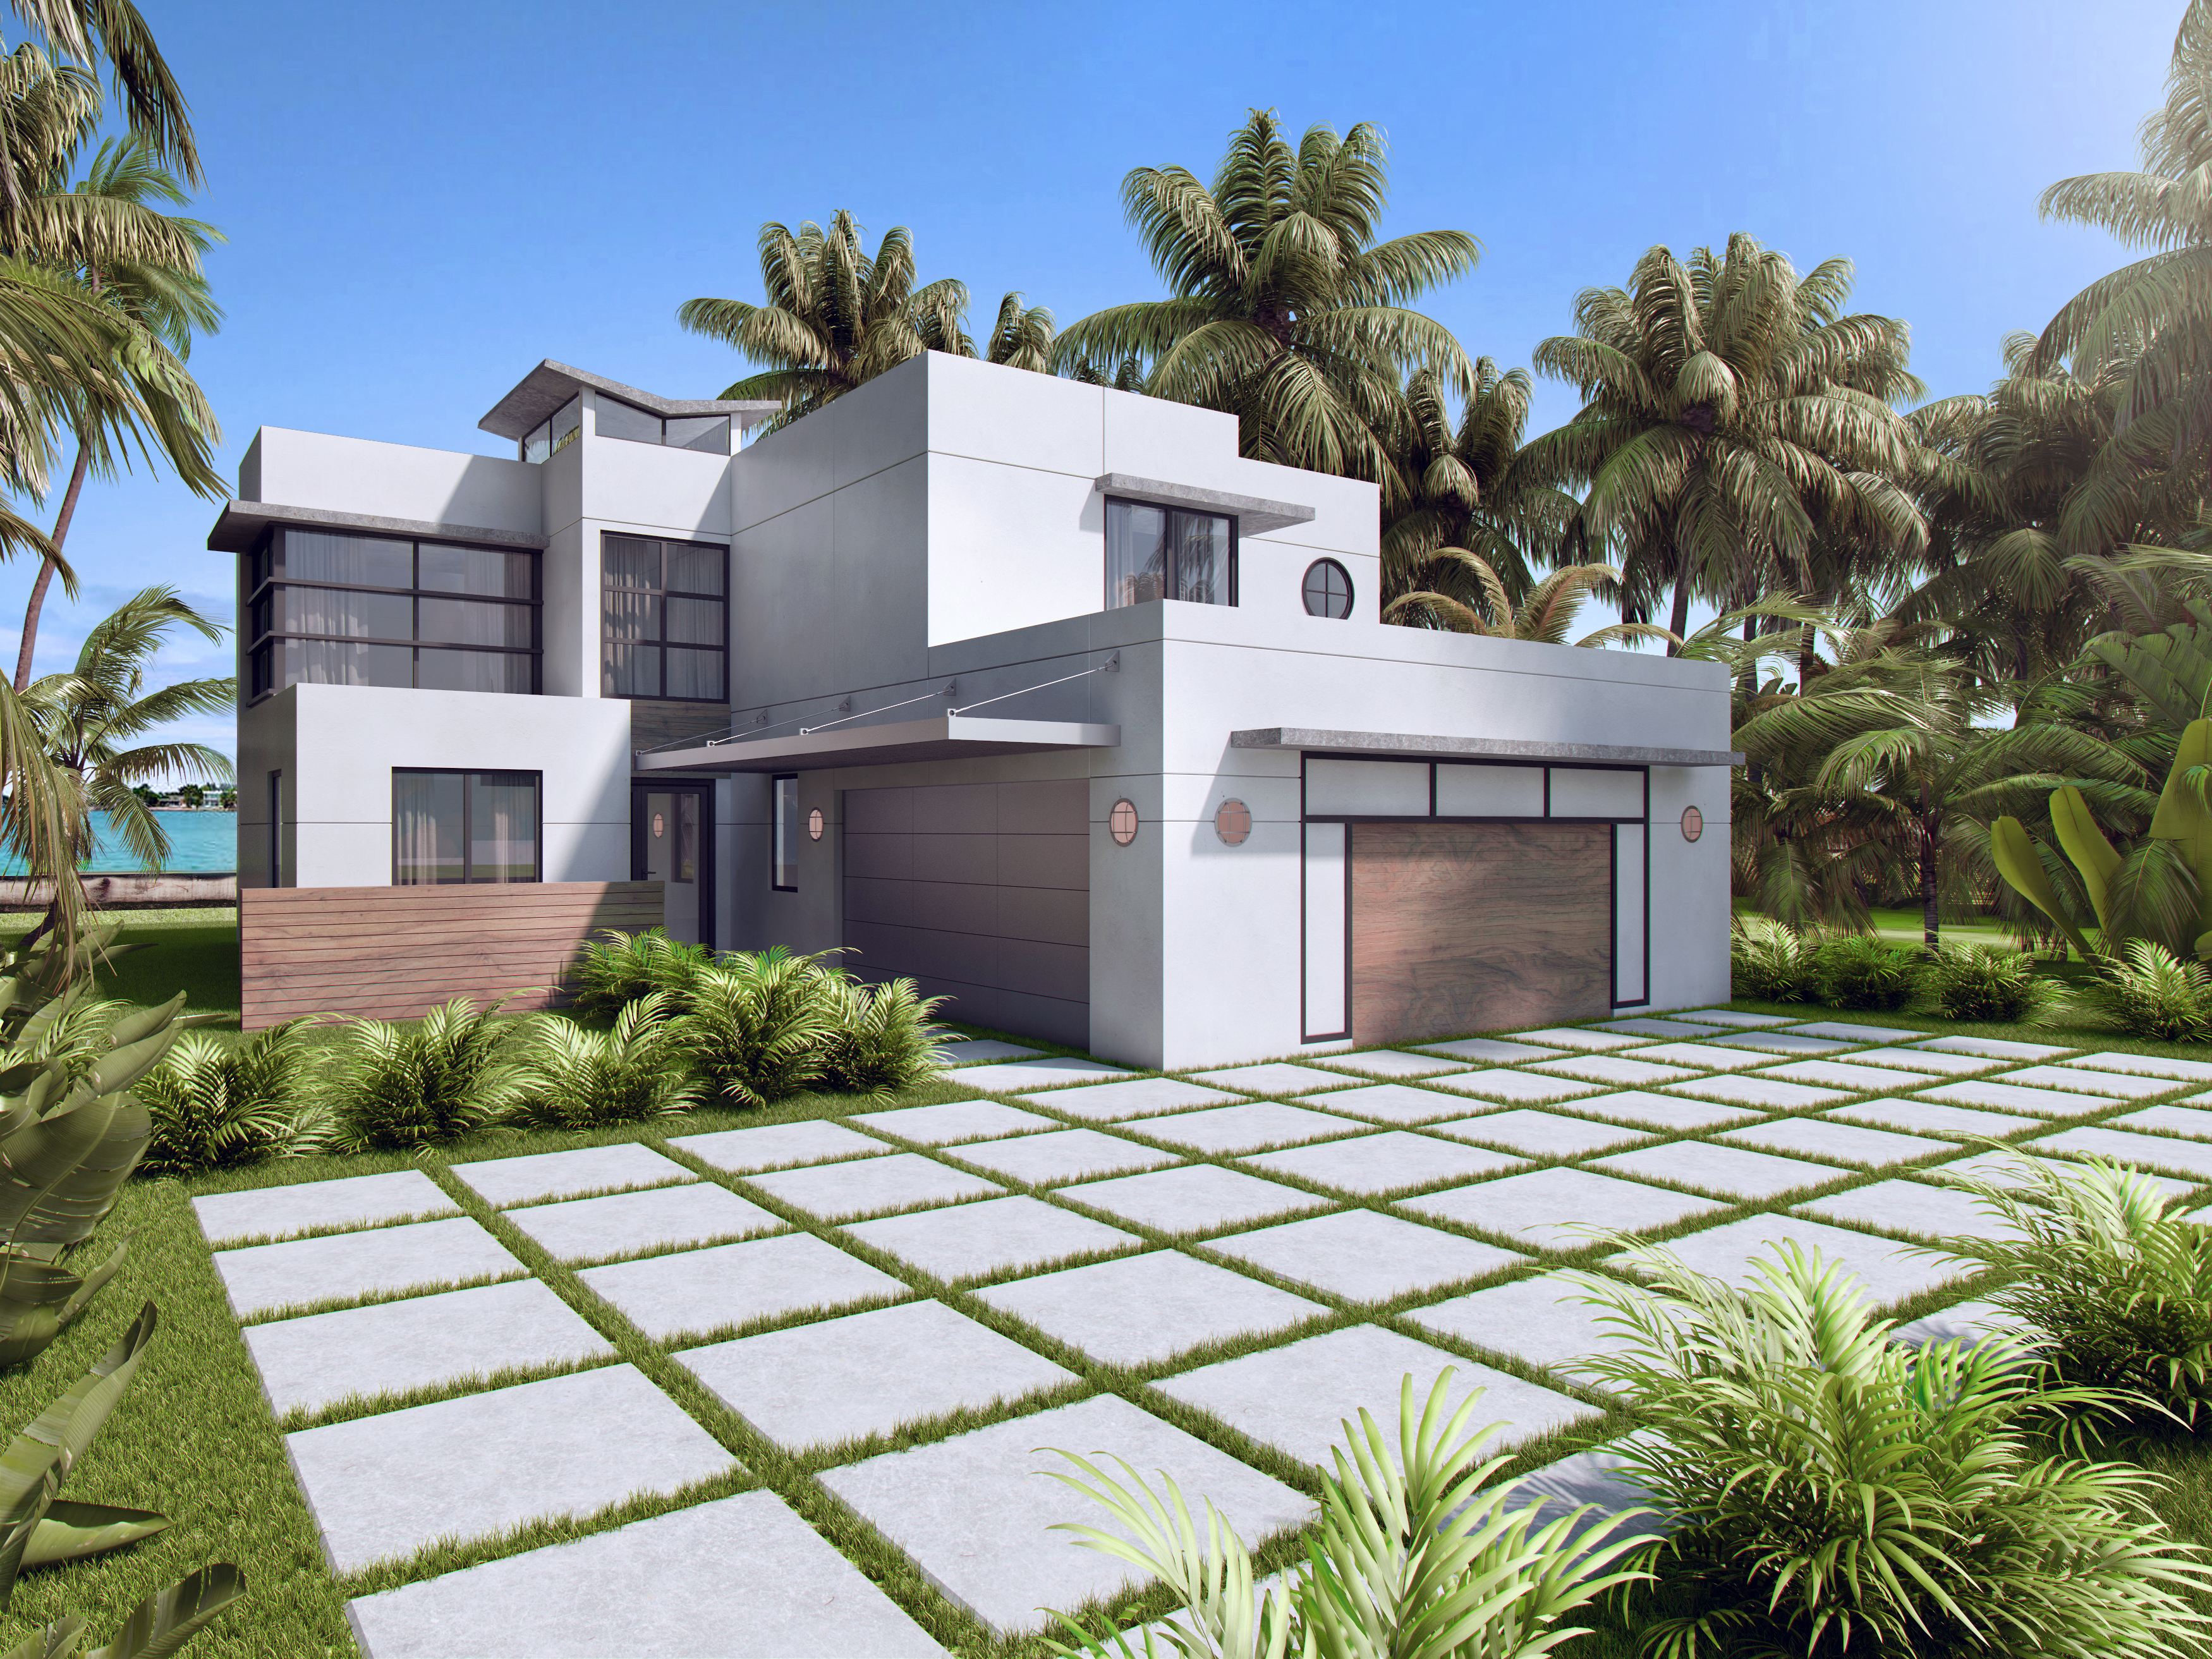 Single Family Home for Sale at 1015 STILLWATER DR Miami Beach, Florida, 33141 United States